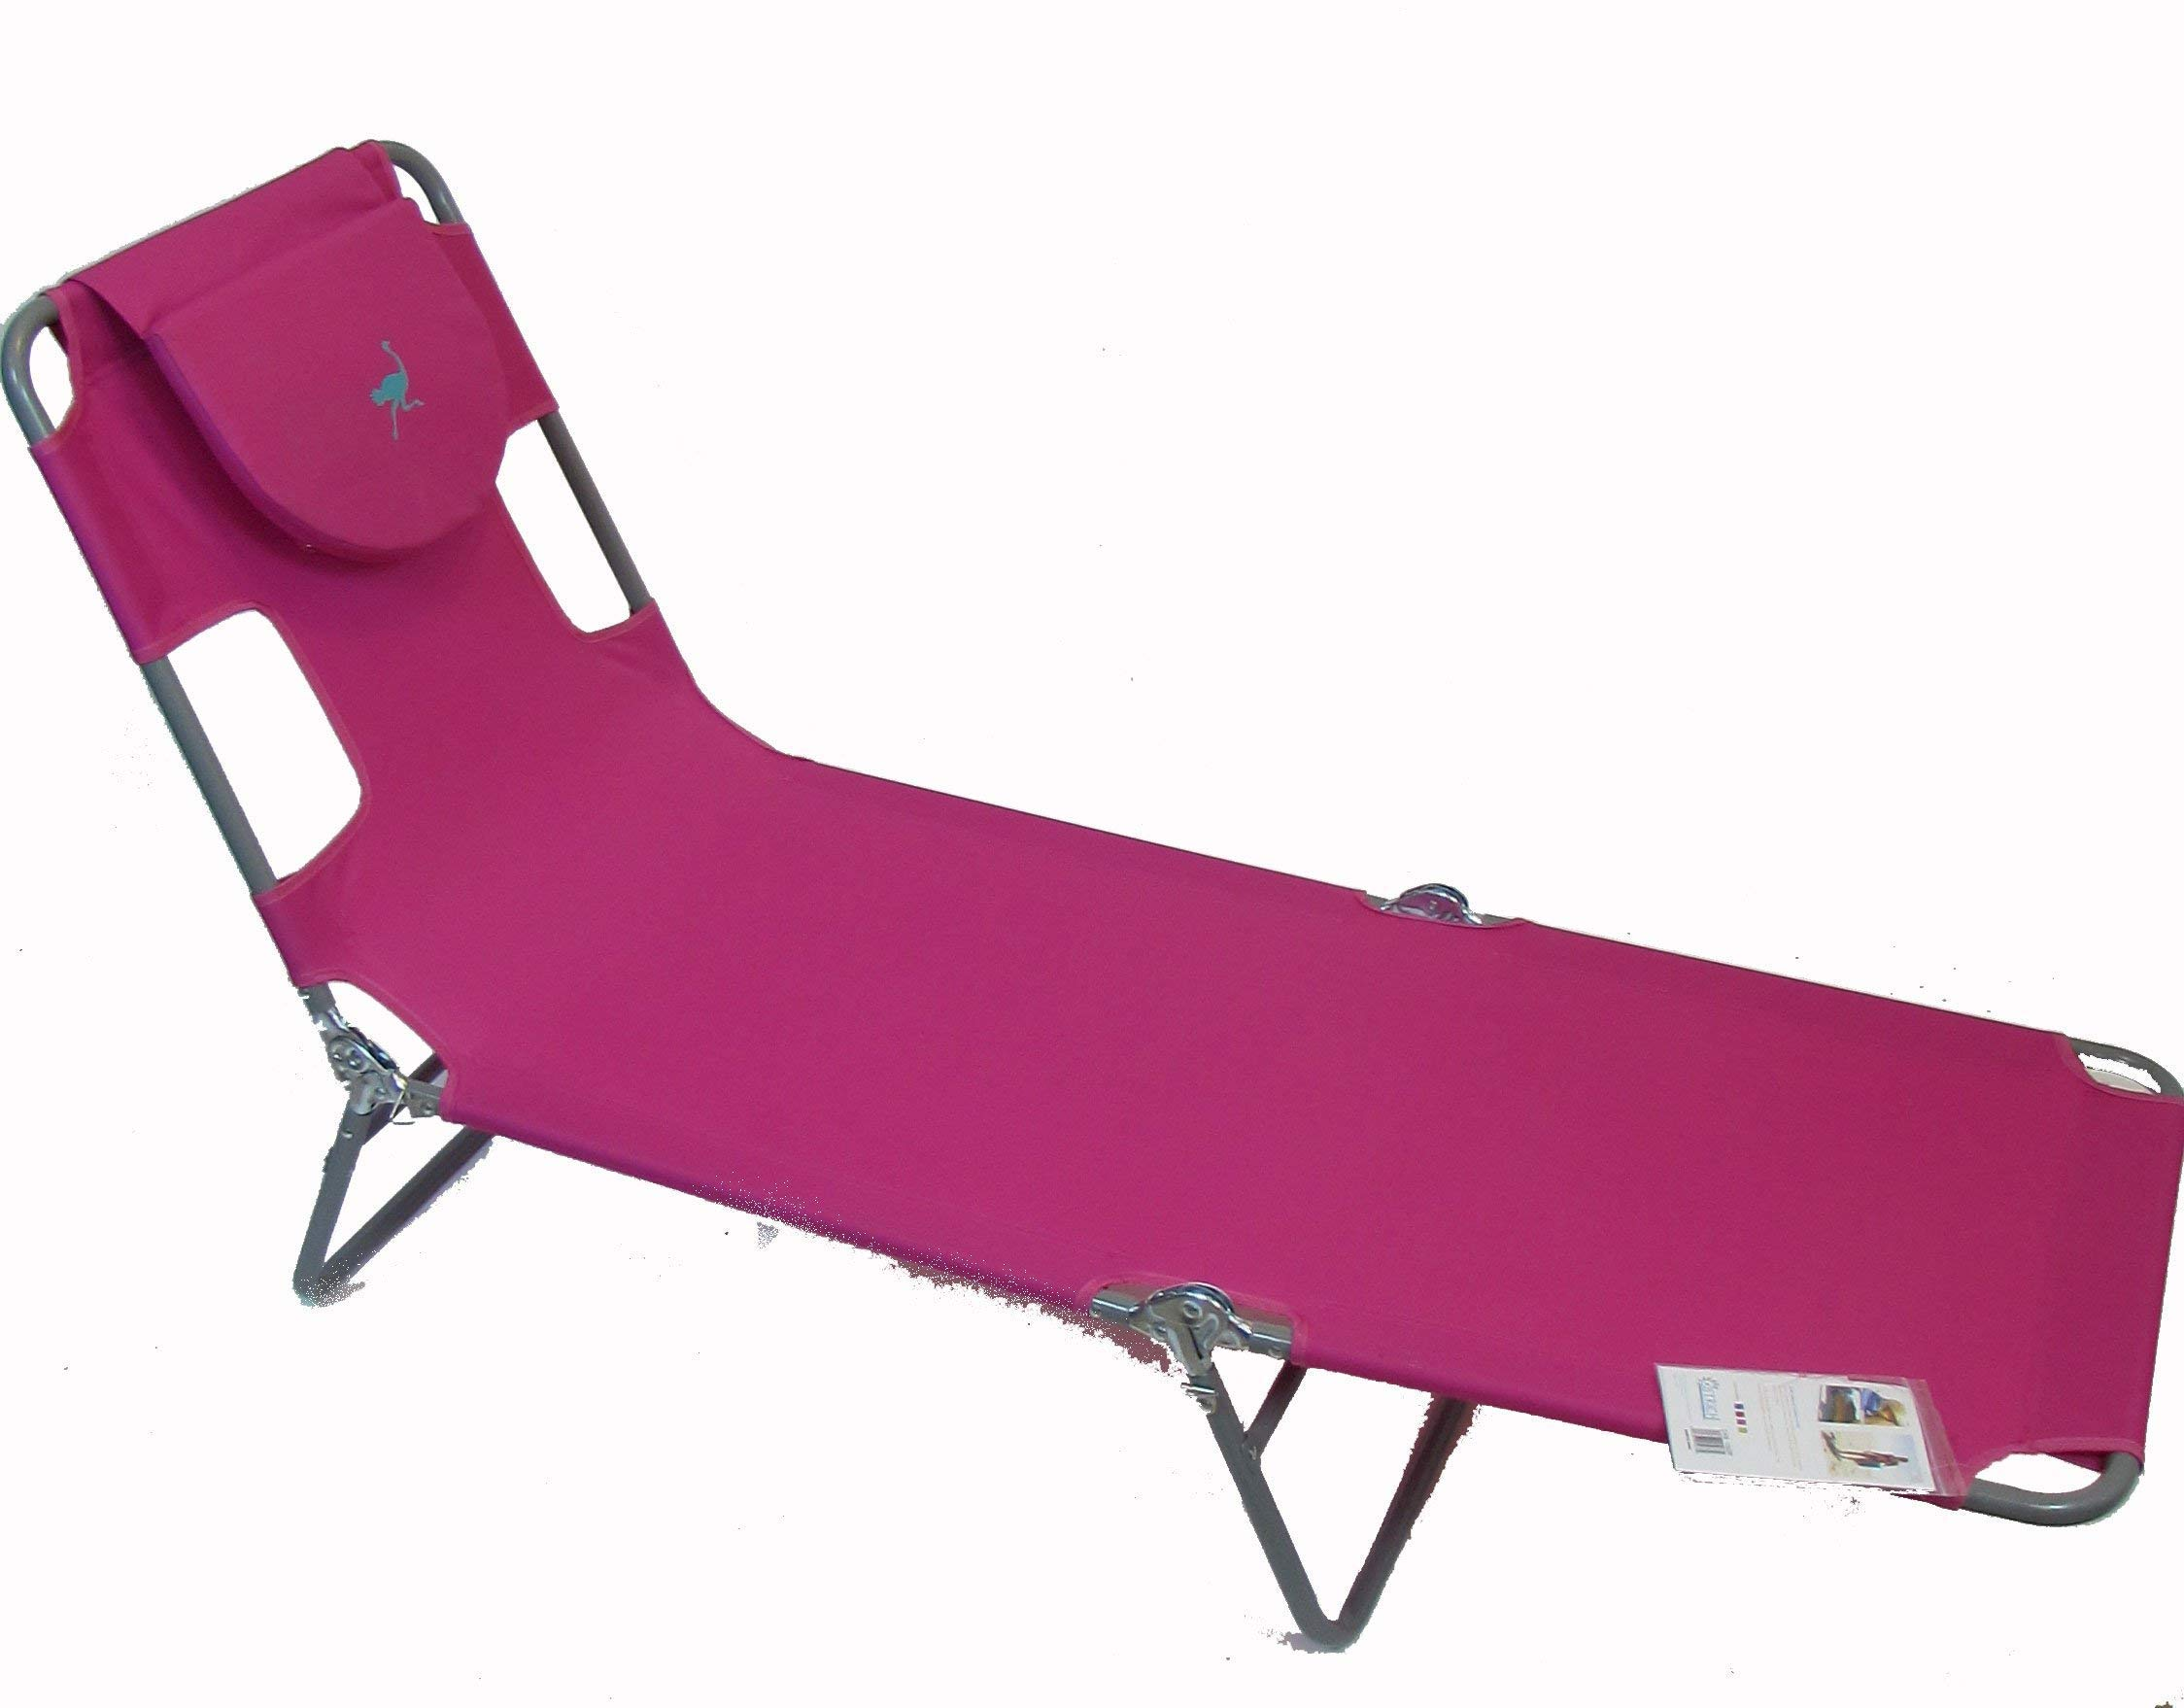 Ostrich Chaise Lounge, Pink (Renewed) by Ostrich